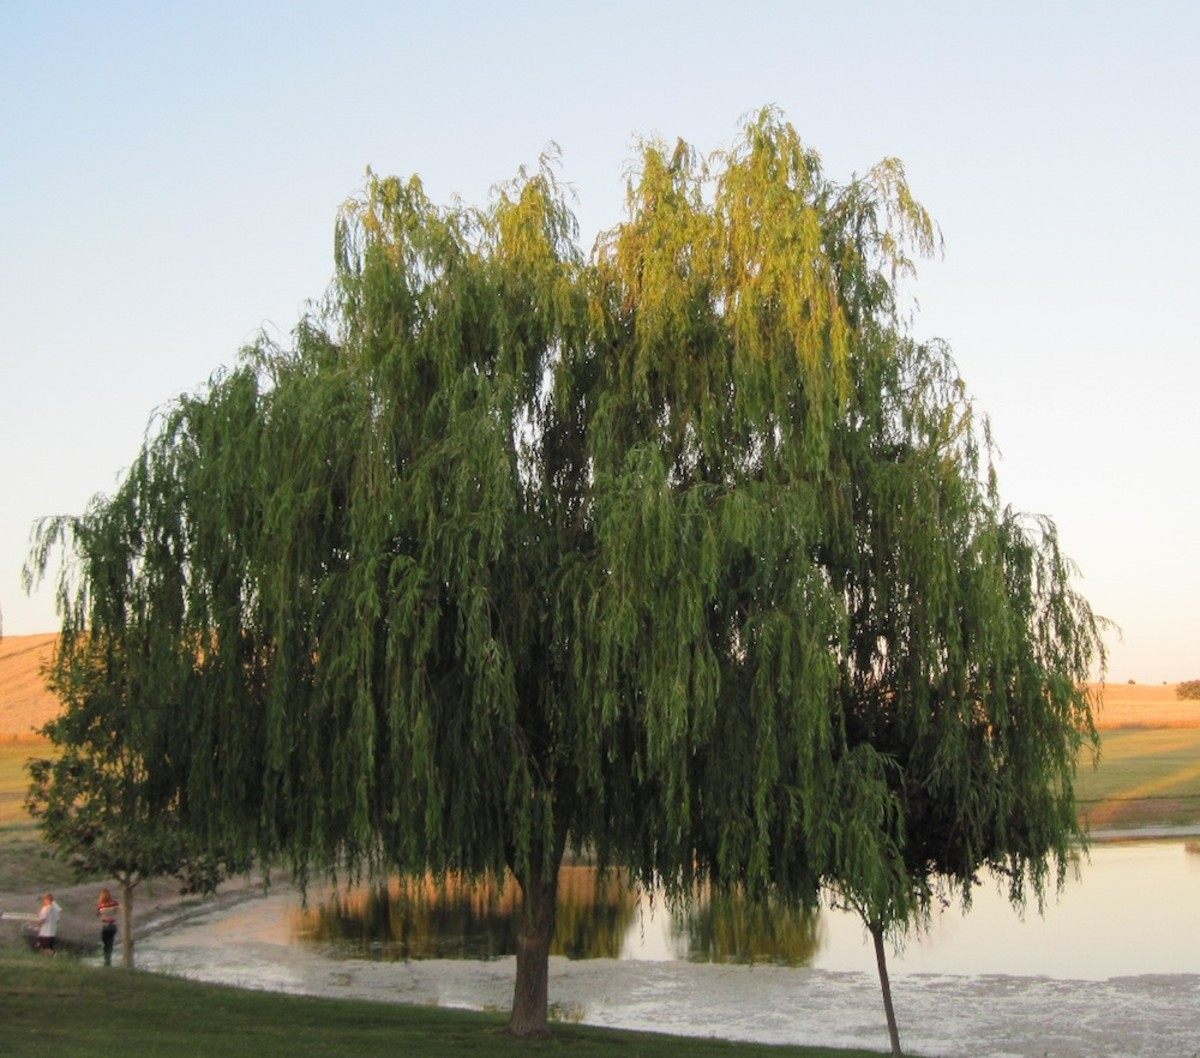 The willow weeps for the pain in the hearts of this man and woman.